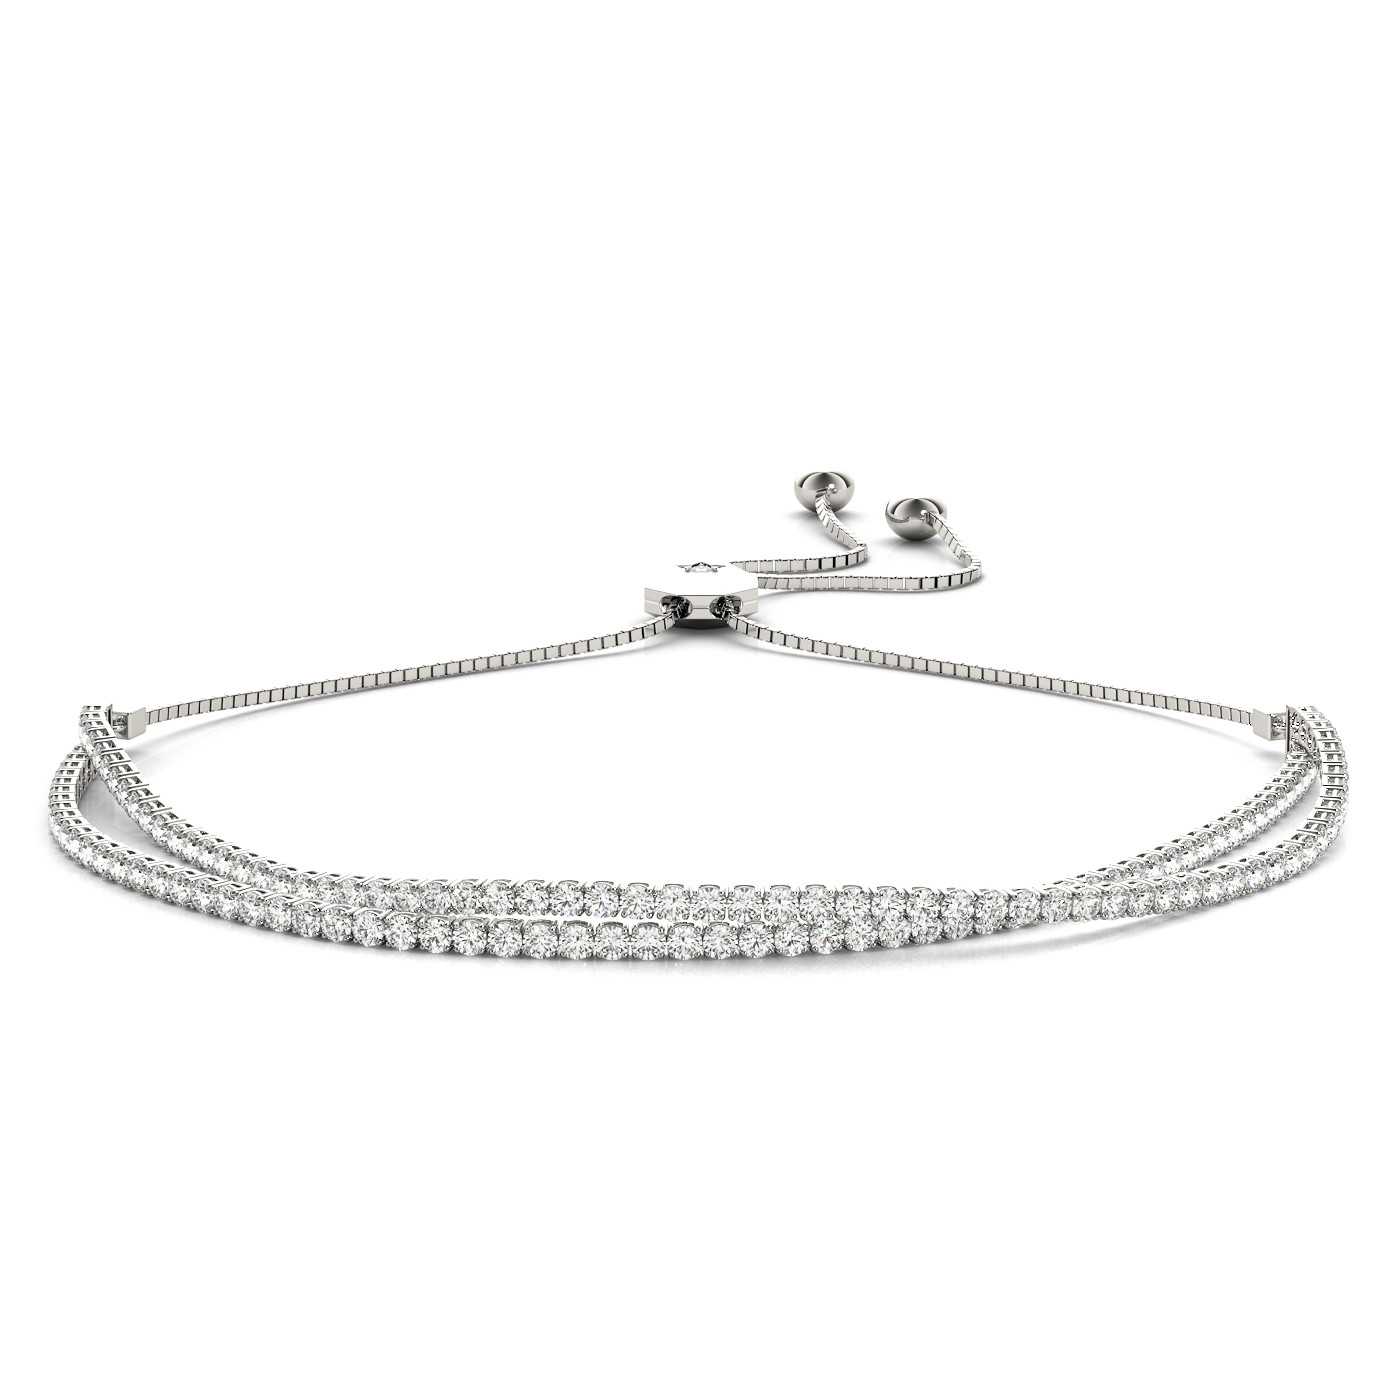 IN LINE ADJUSTABLE TENNIS BRACELET